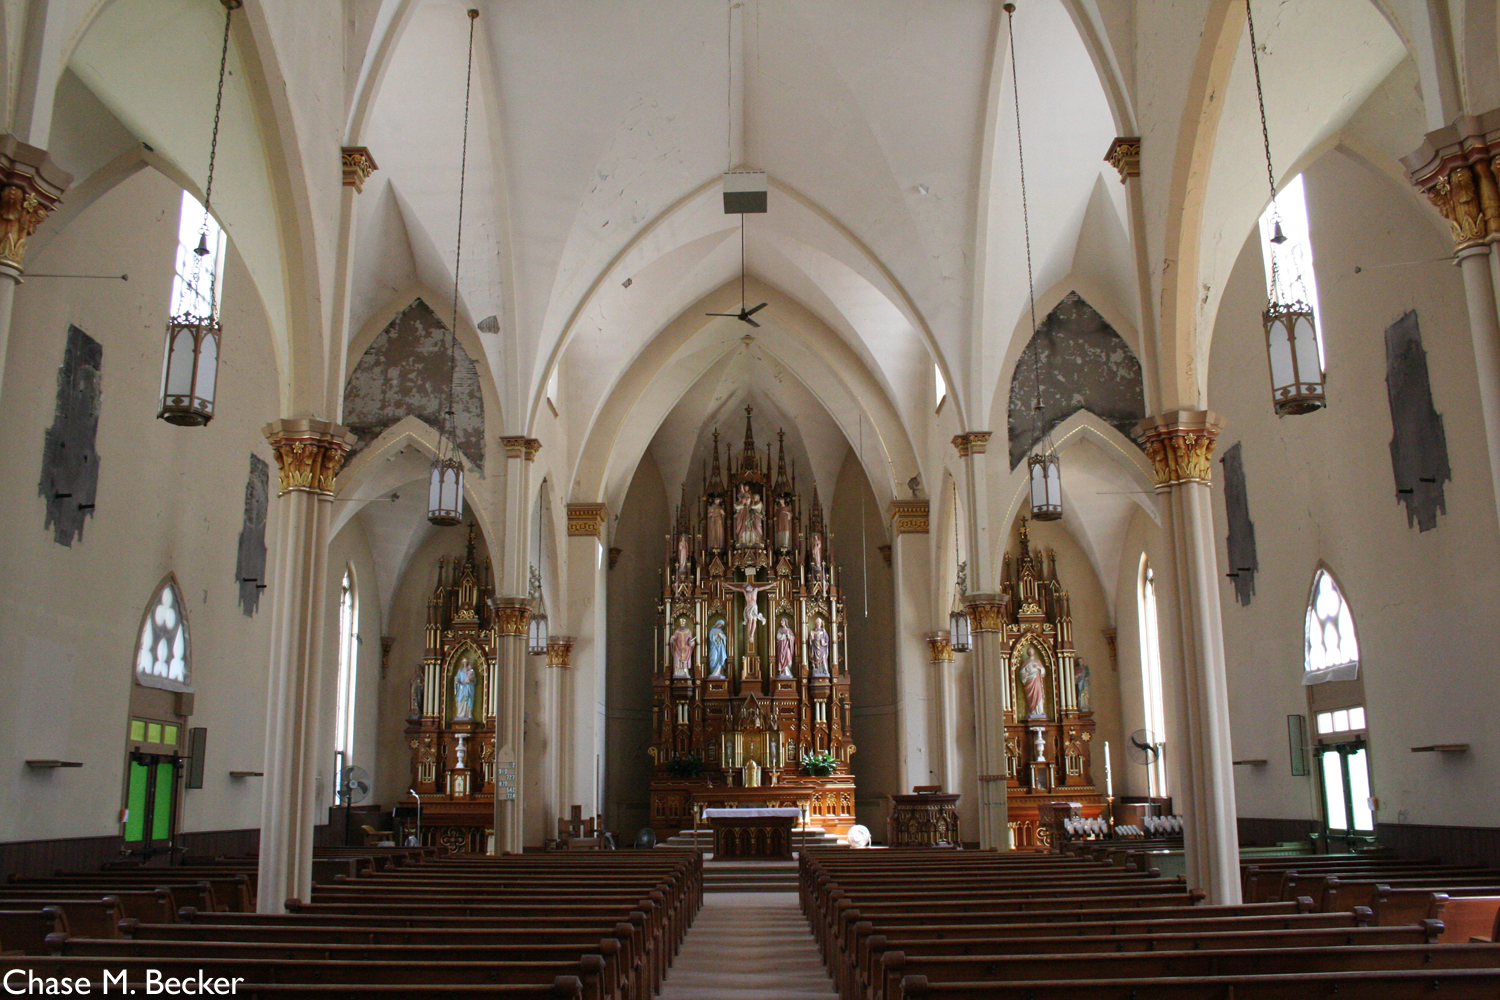 New Amp Old In Church Architecture A Case Study